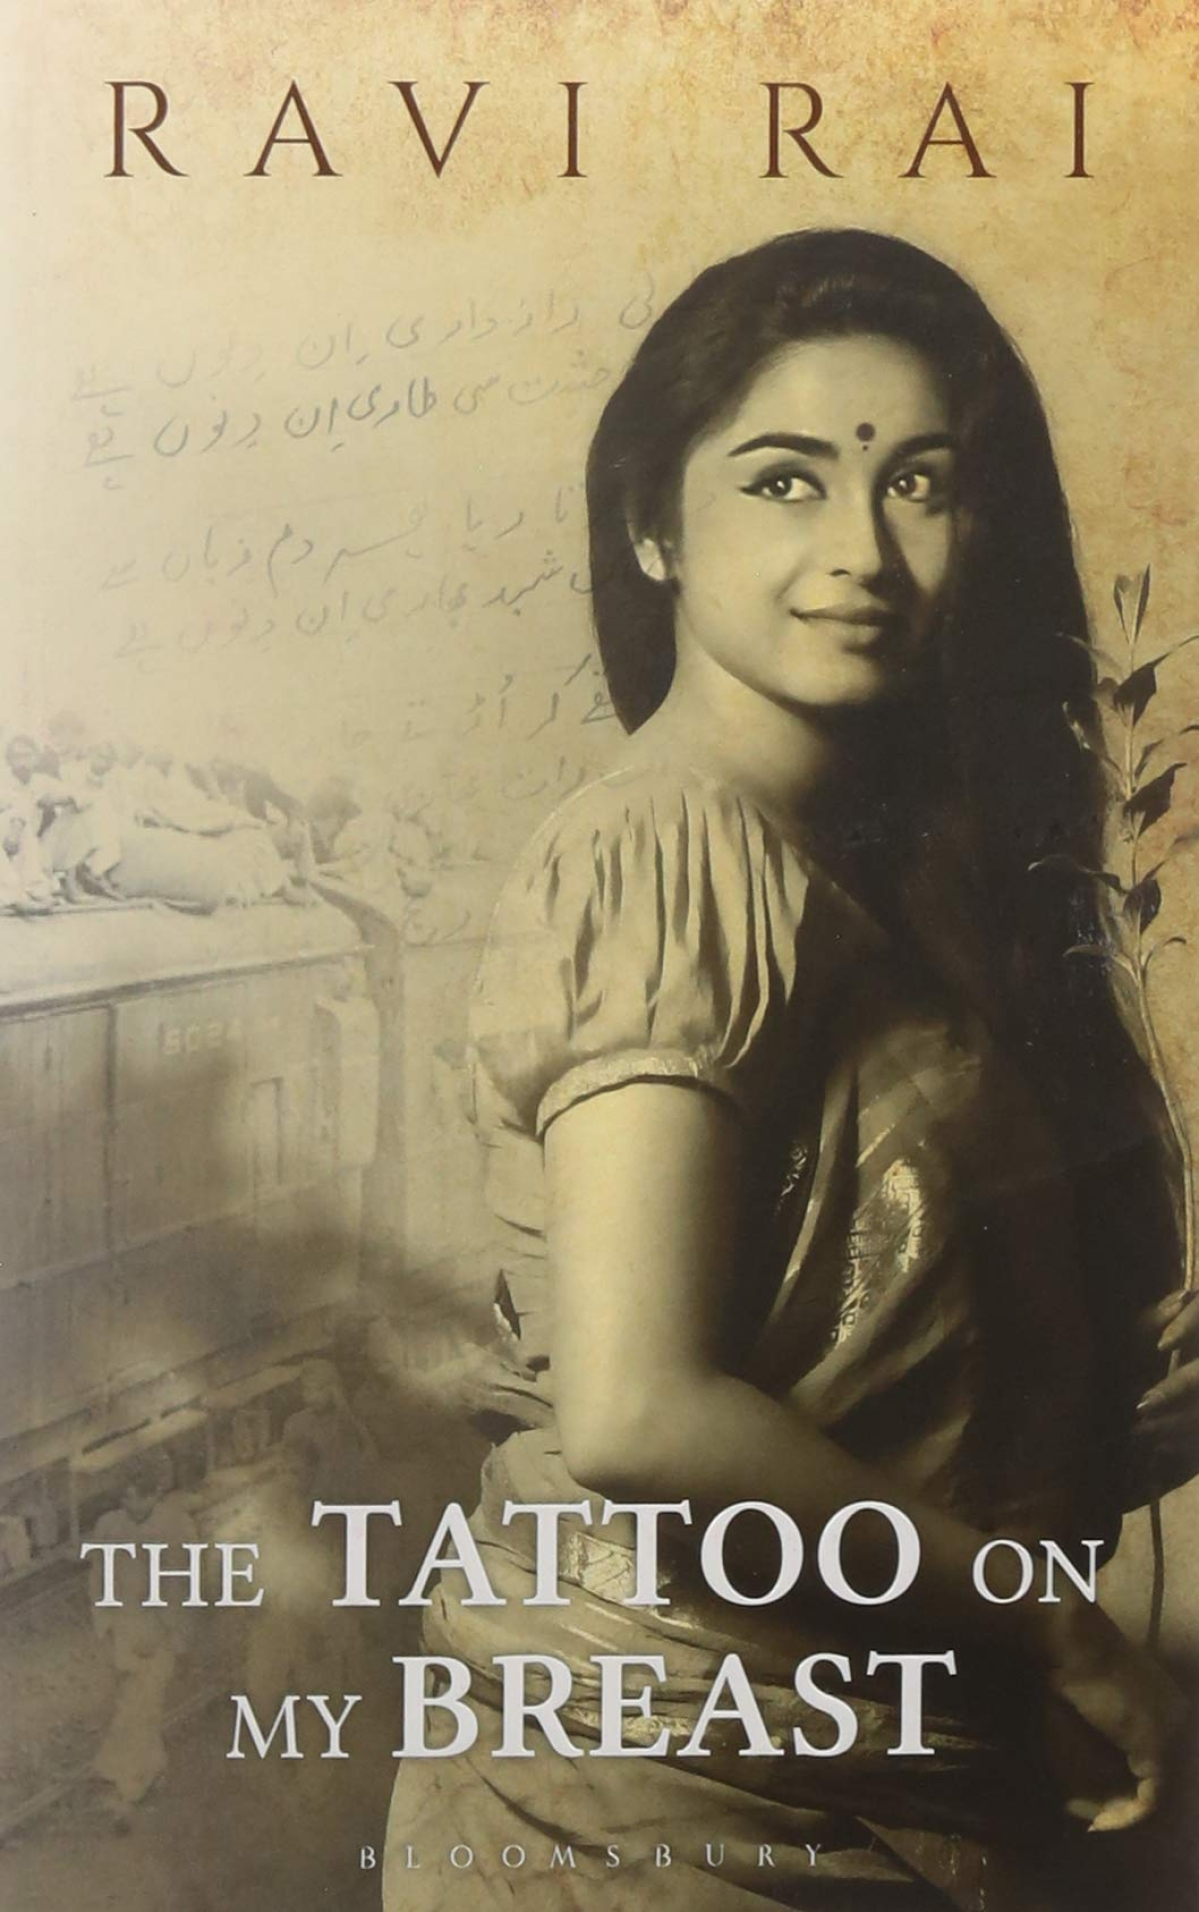 The Tattoo on my Breast: Partition stories never pale